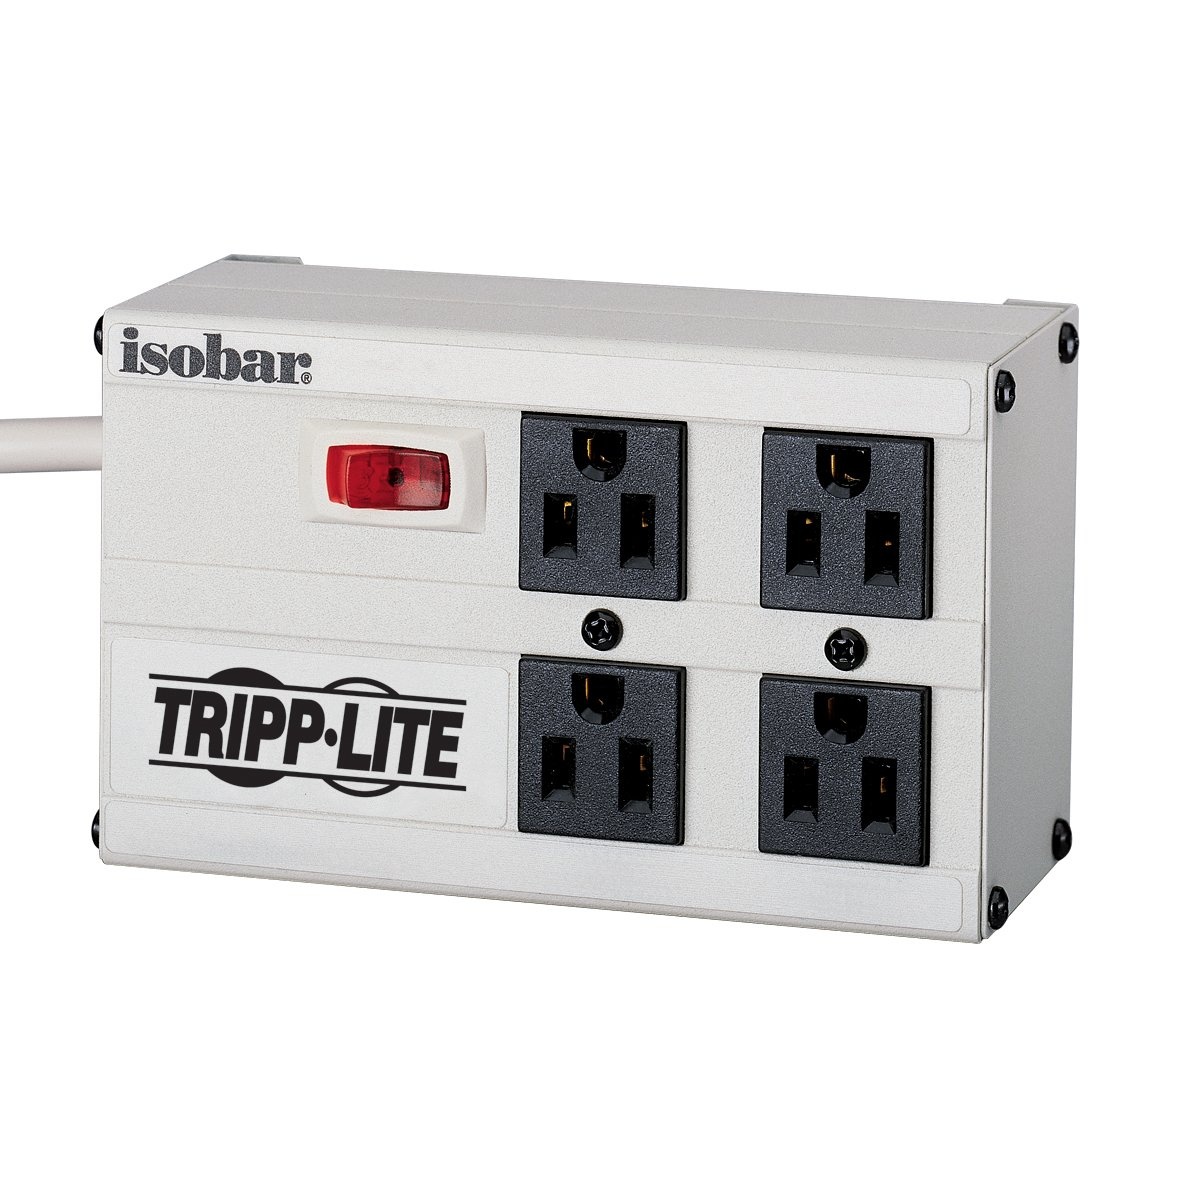 Tripp Lite Isobar 4 Outlet Surge Protector Power Strip, 6ft. Cord, Right Angle Plug, 3330 Joules, Metal, 50K Insurance & (IBAR4-6D)